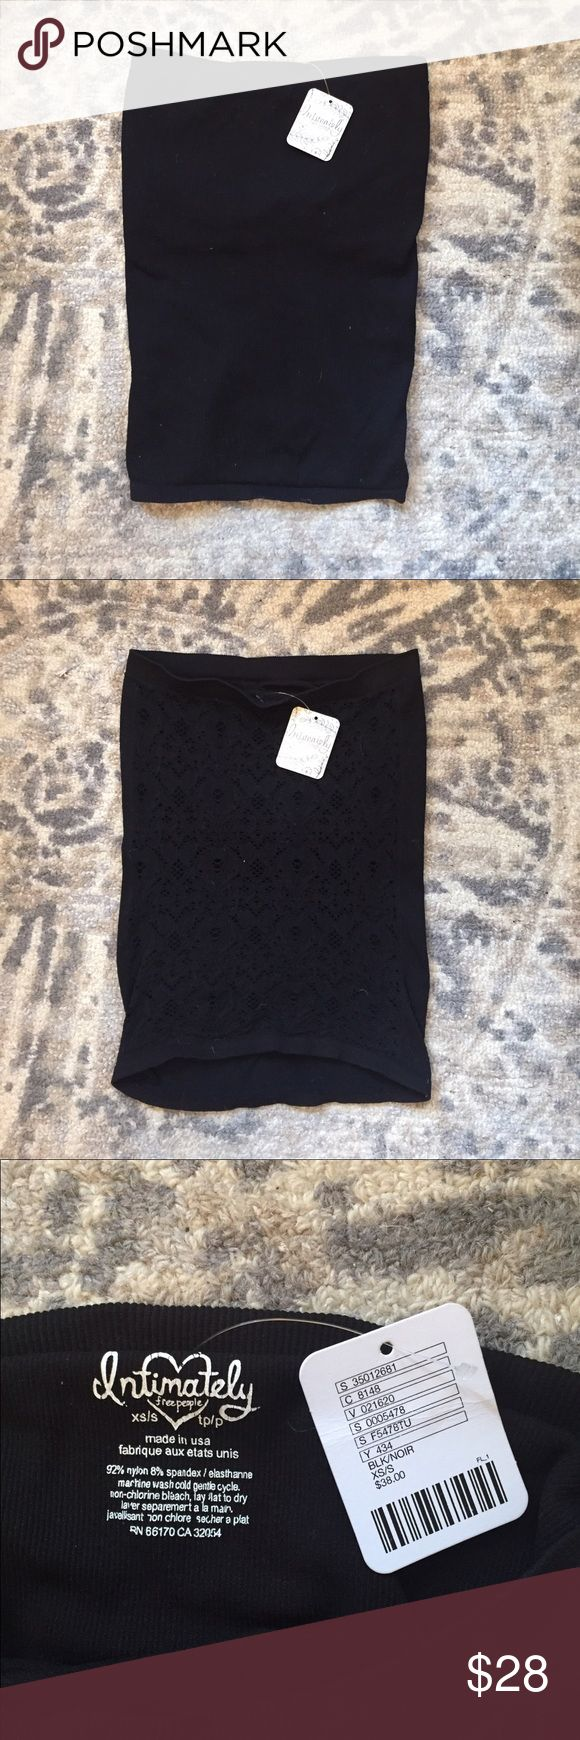 NWT Bandeau Top FREE PEOPLE. Brand new bandeau top with lace-like detail on one side. Accepting offers! Free People Intimates & Sleepwear Bandeaus